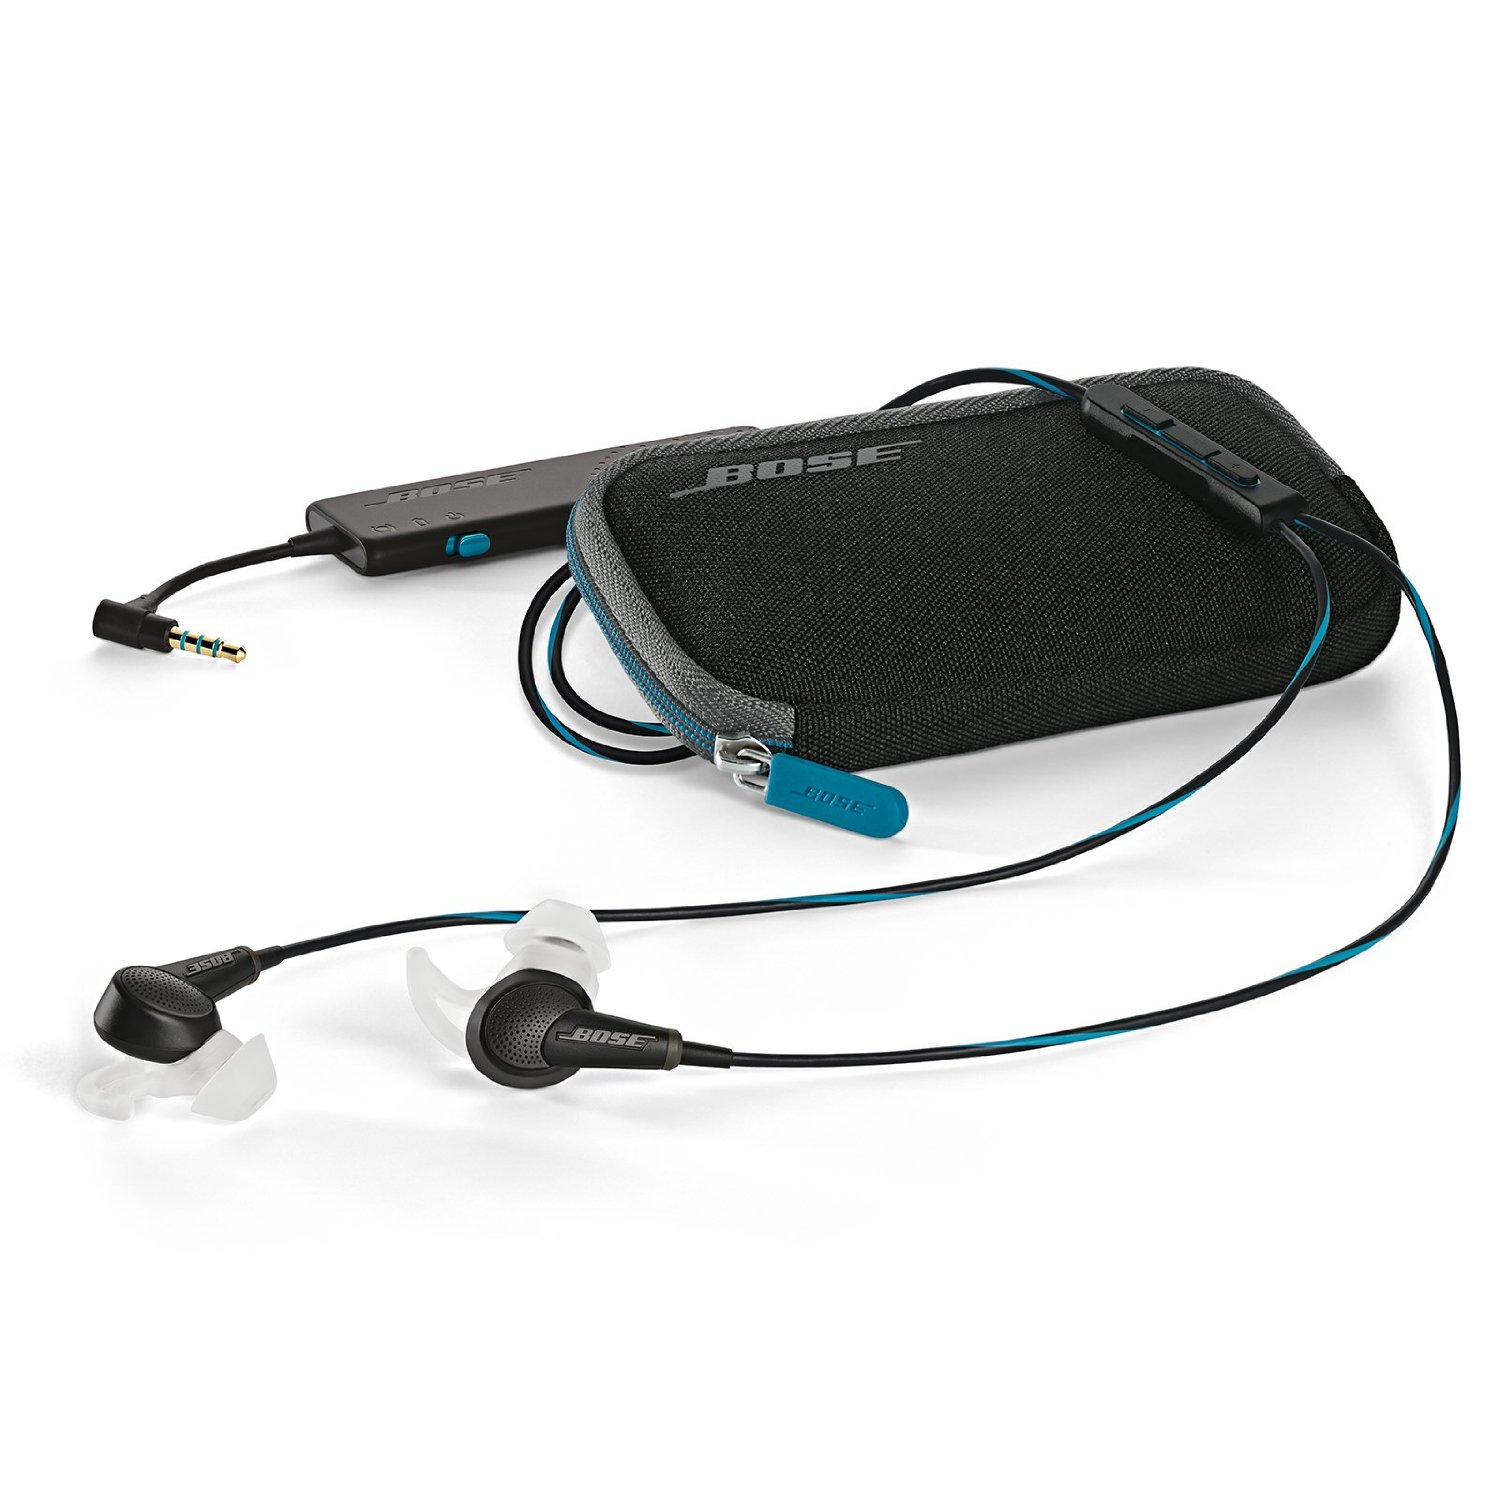 Bose QuietComfort® 20 In-Ear Wired Headphones – Earbuds for Apple, Samsung and Android™ devices